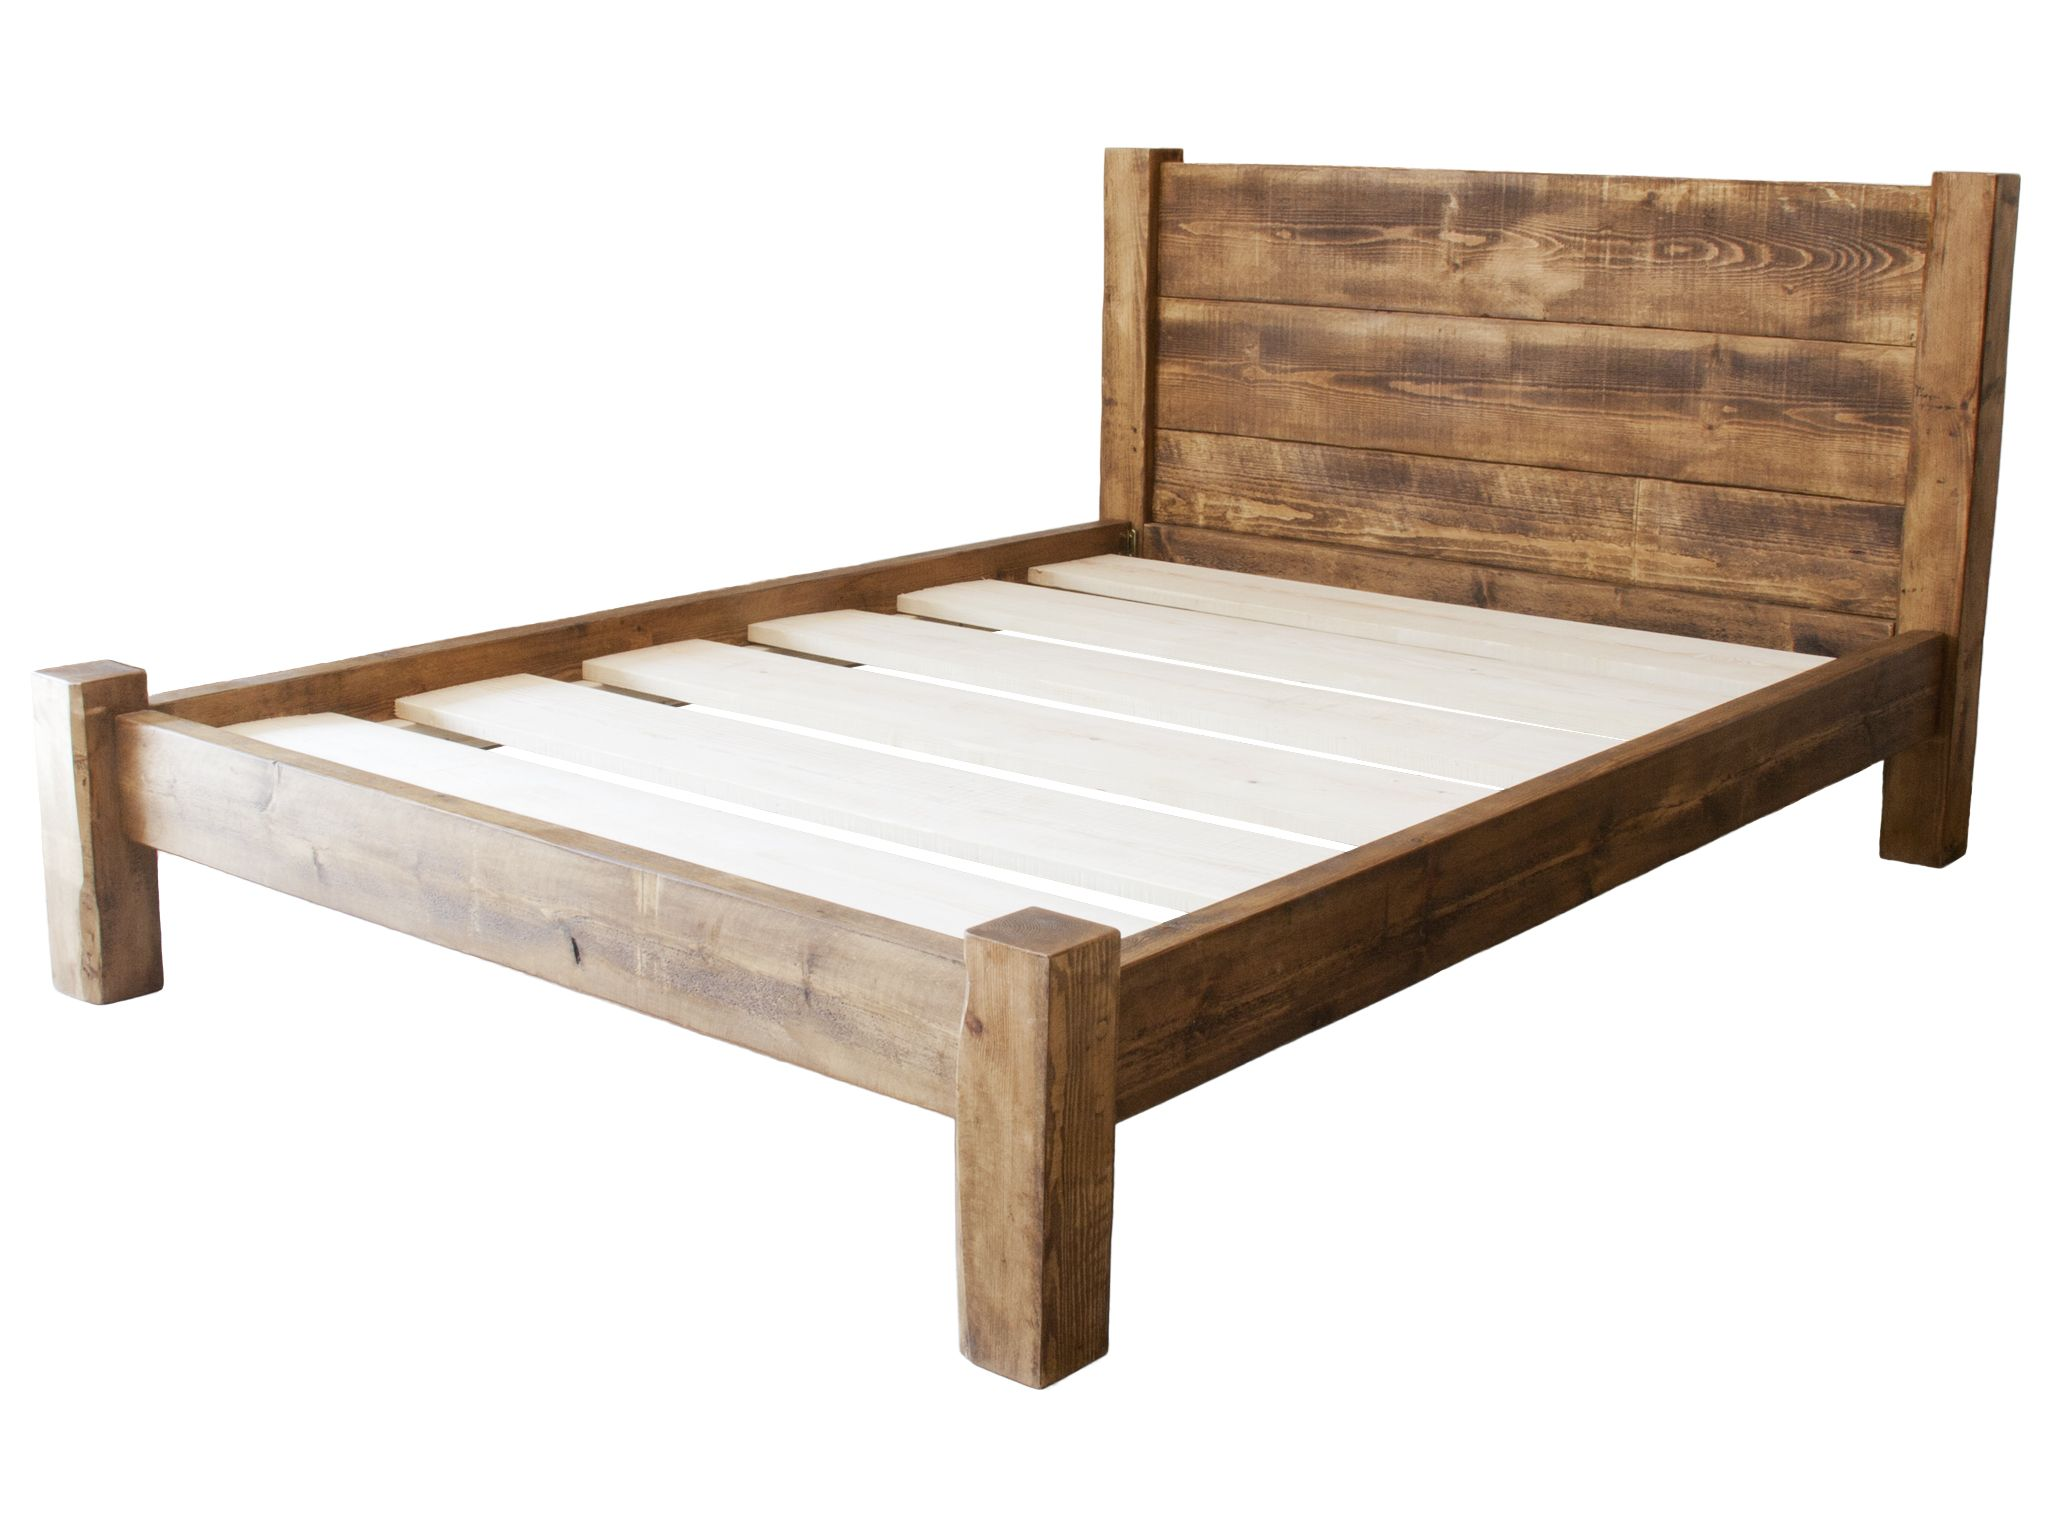 These Small Double Beds Are Charming Yet Simple Solid Wood Will Suit Any Bedroom Interior The But Chunky Continue To